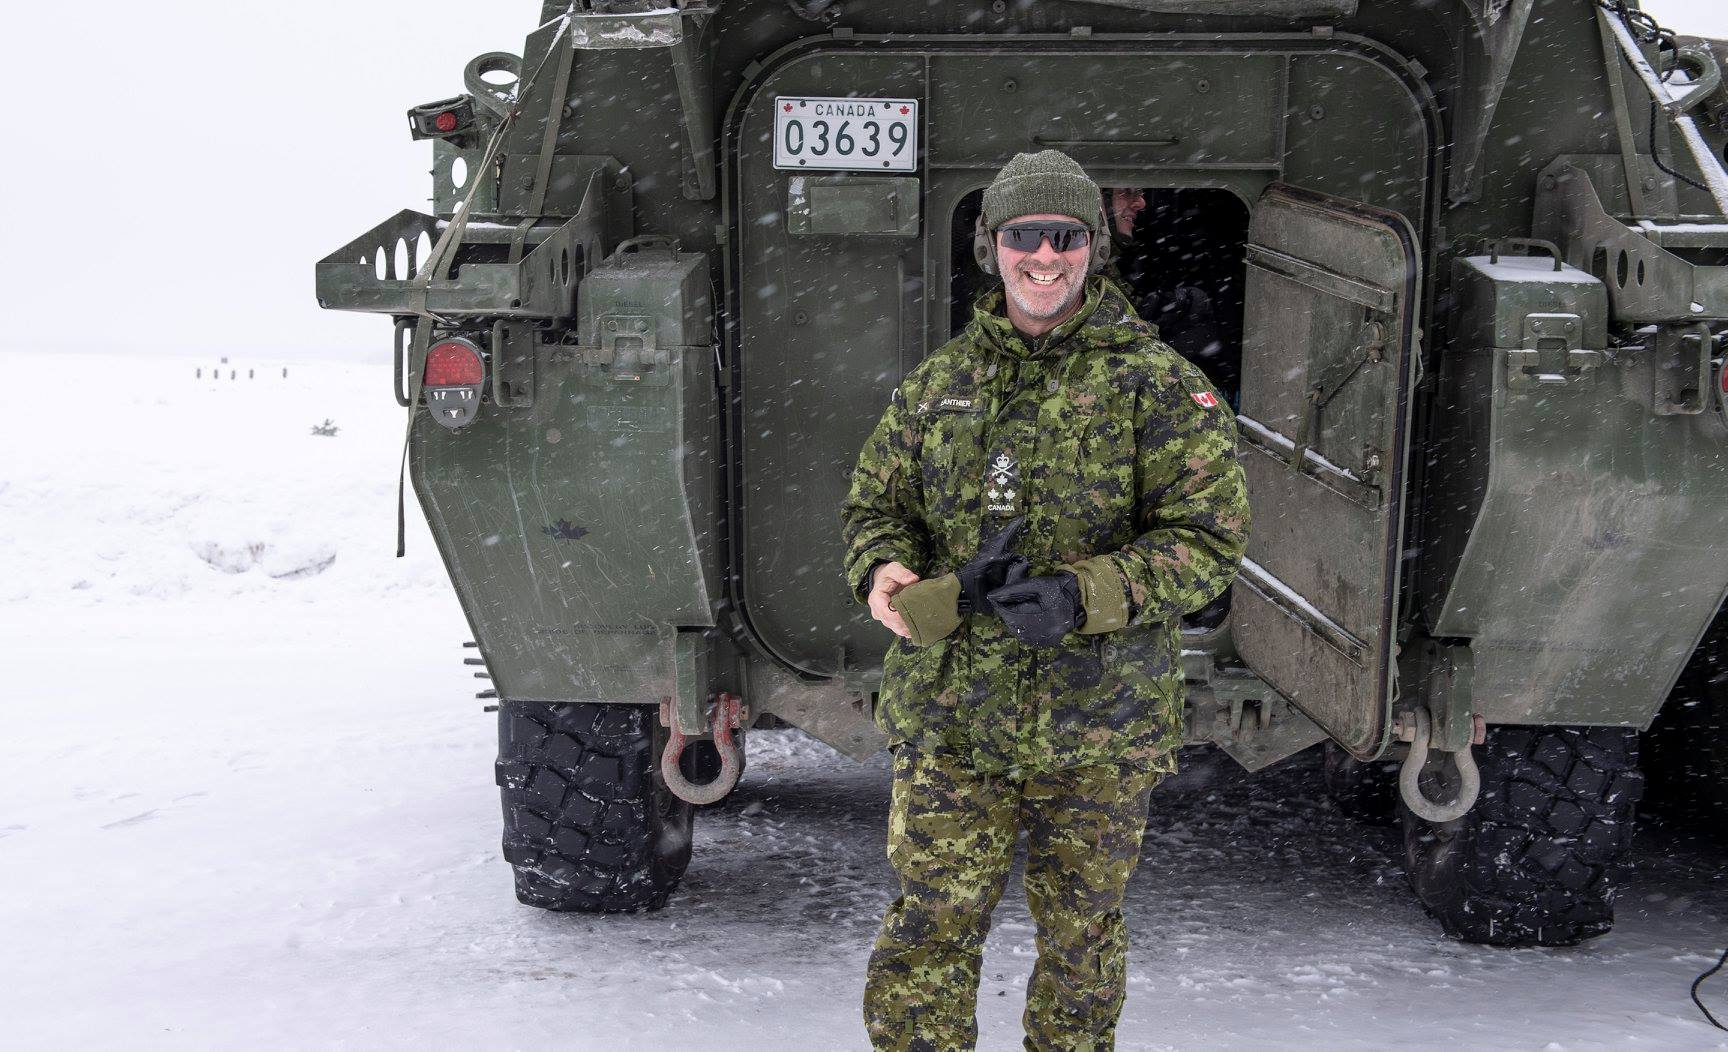 Photos - Canadian Armed Forces Photos | Page 7 | MilitaryImages Net